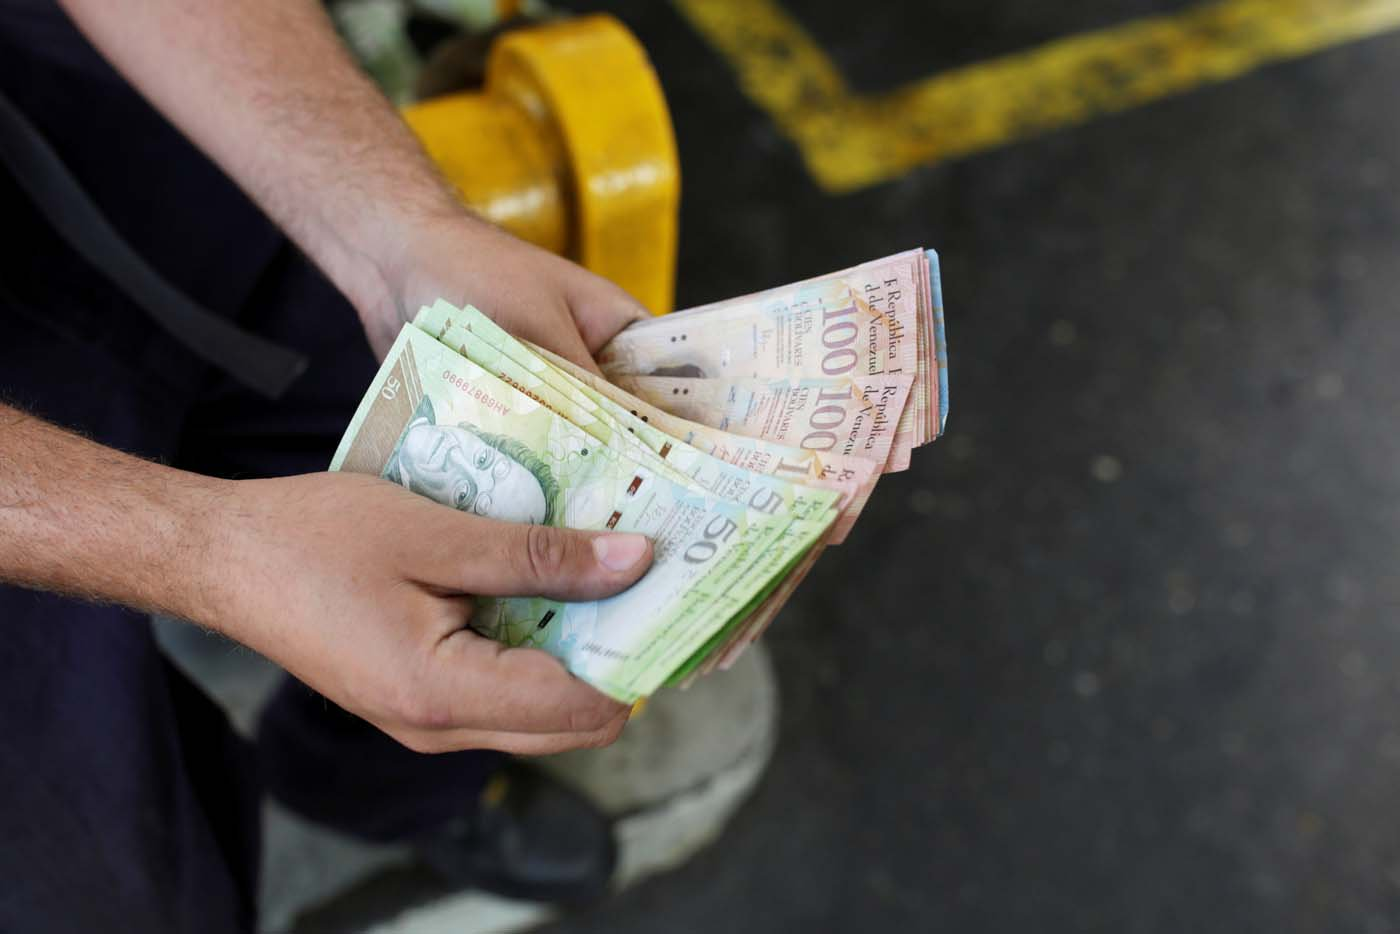 A worker counts Venezuelan bolivar notes at a gas station of Venezuelan state oil company PDVSA in Caracas, Venezuela March 21, 2017. REUTERS/Marco Bello